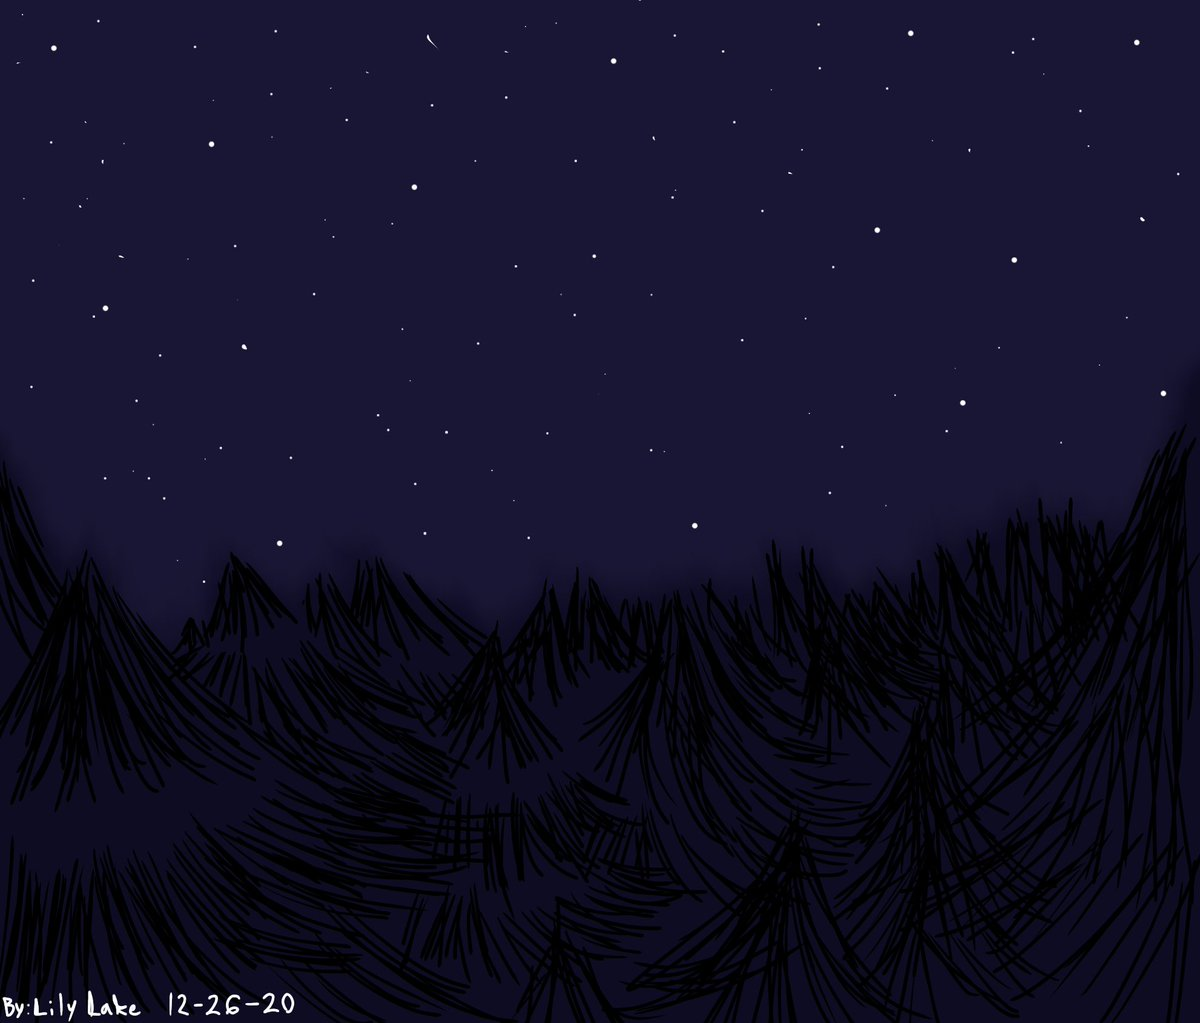 I'm definitely proud of drawing a background. (For the first time as well too btw-) #backgroundart #art #night #stars #trees #oaktrees